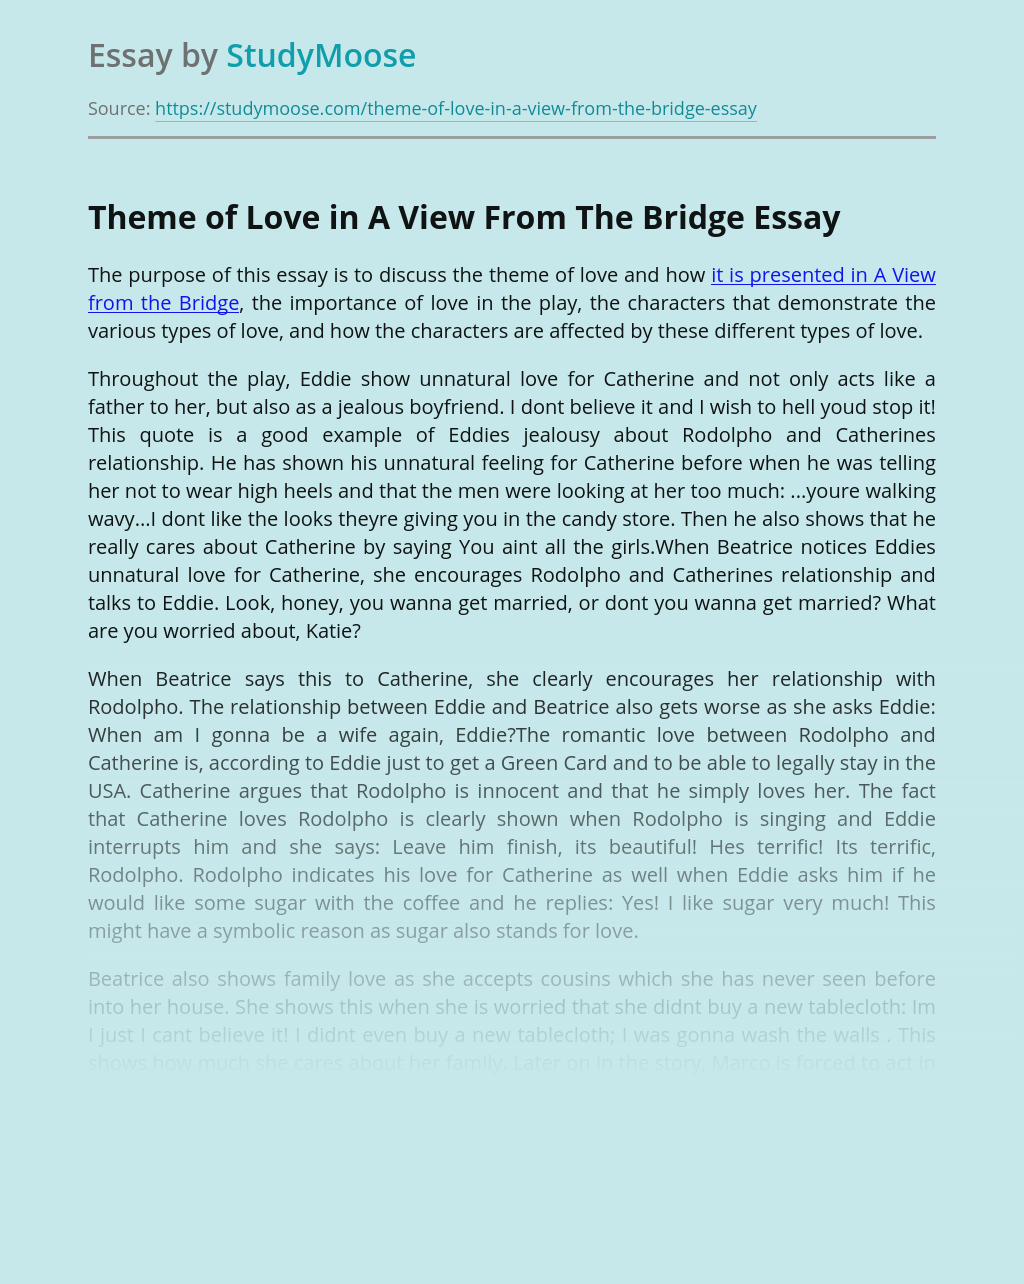 Theme of Love in A View From The Bridge